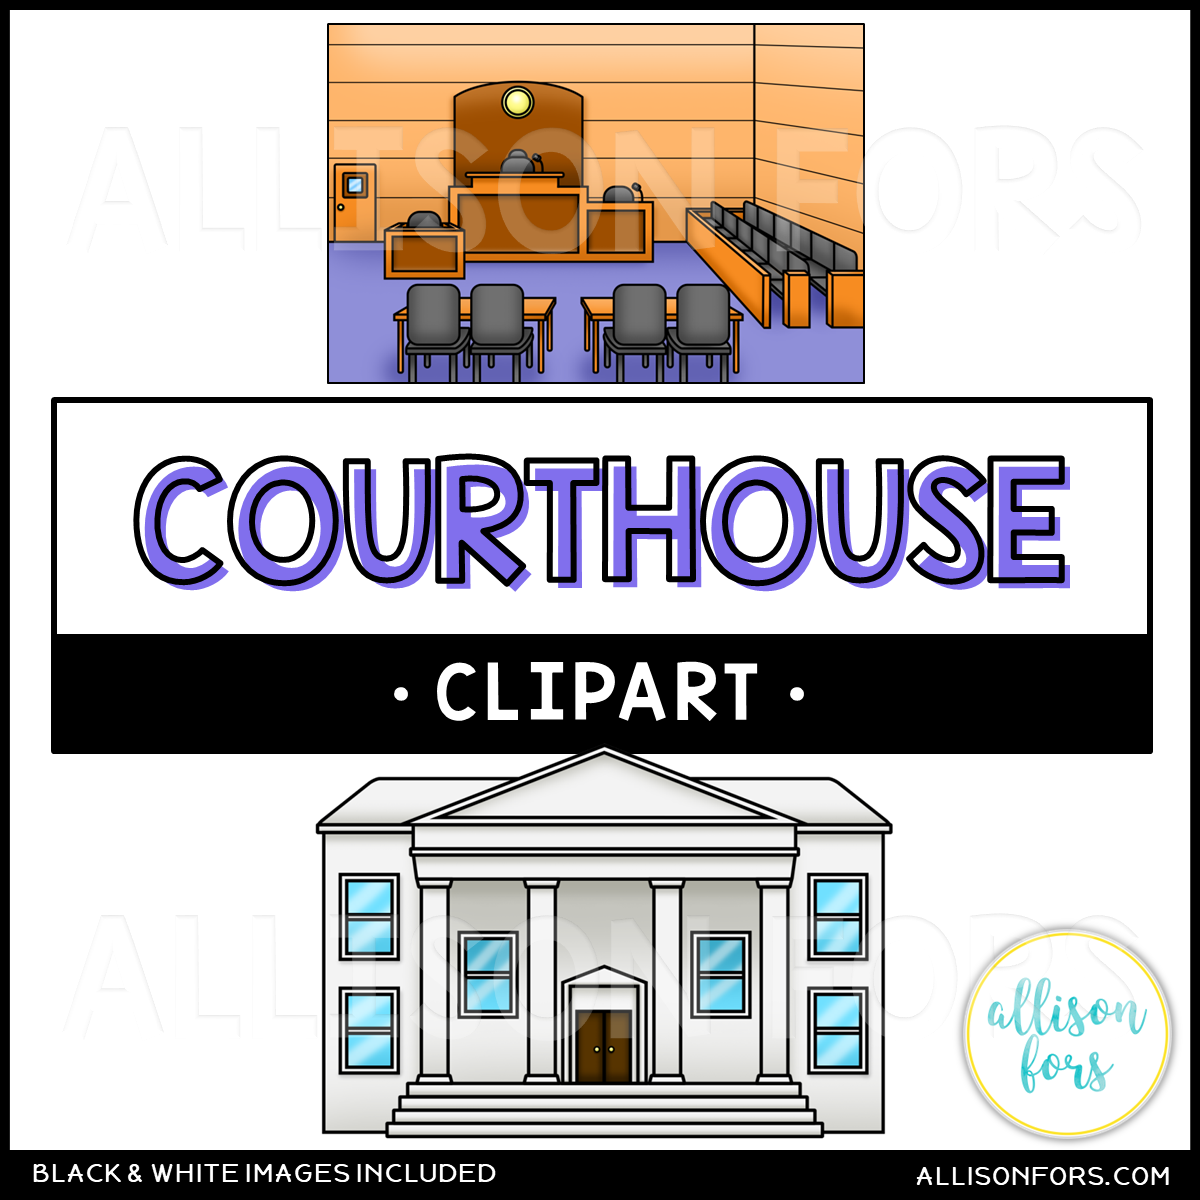 Courthouse & Courtroom Clip Art.